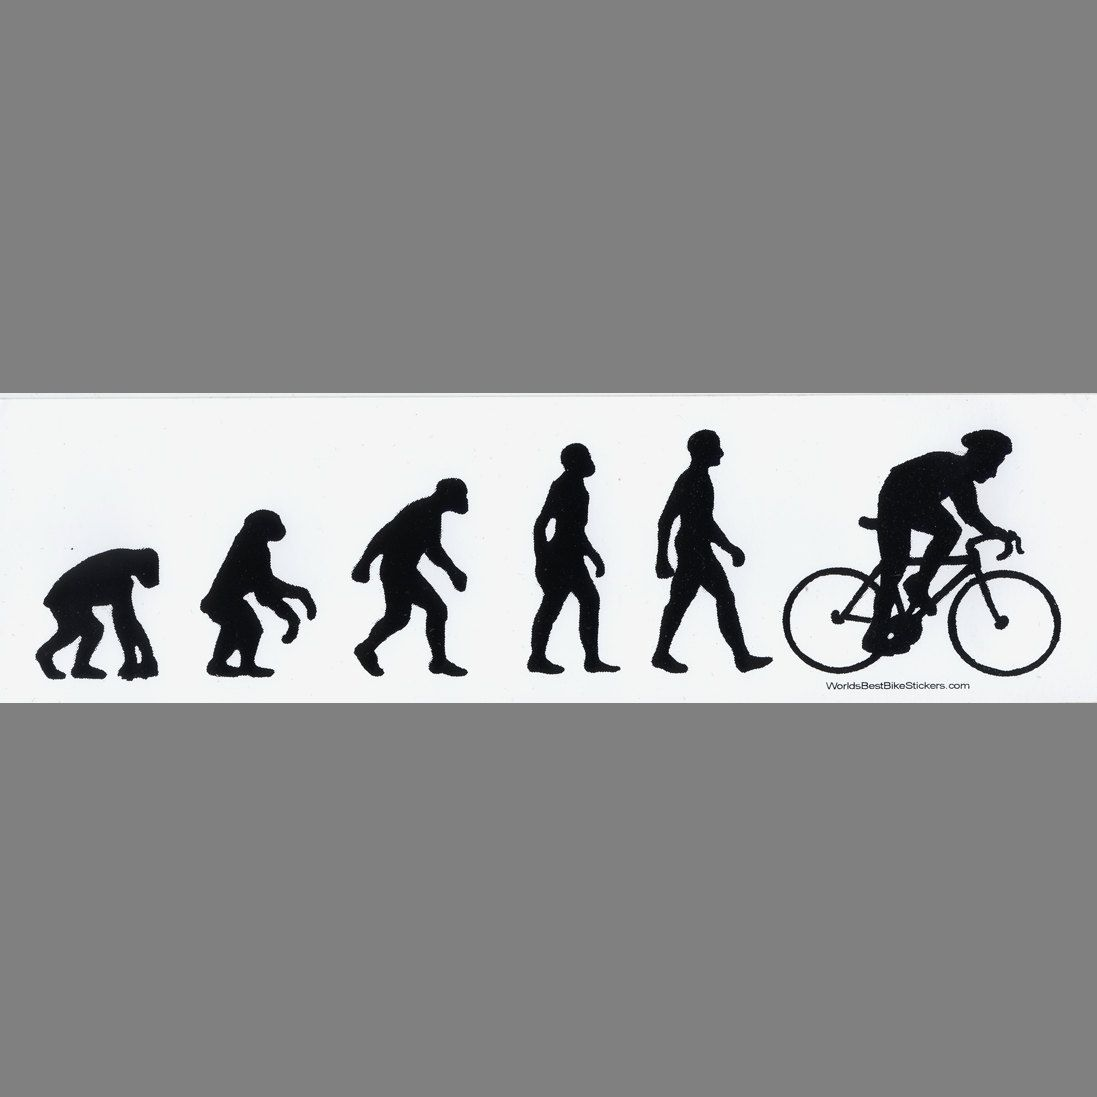 Man bike evolution bumper sticker by bikestickers on etsy 2 49 sticker design bumper stickers